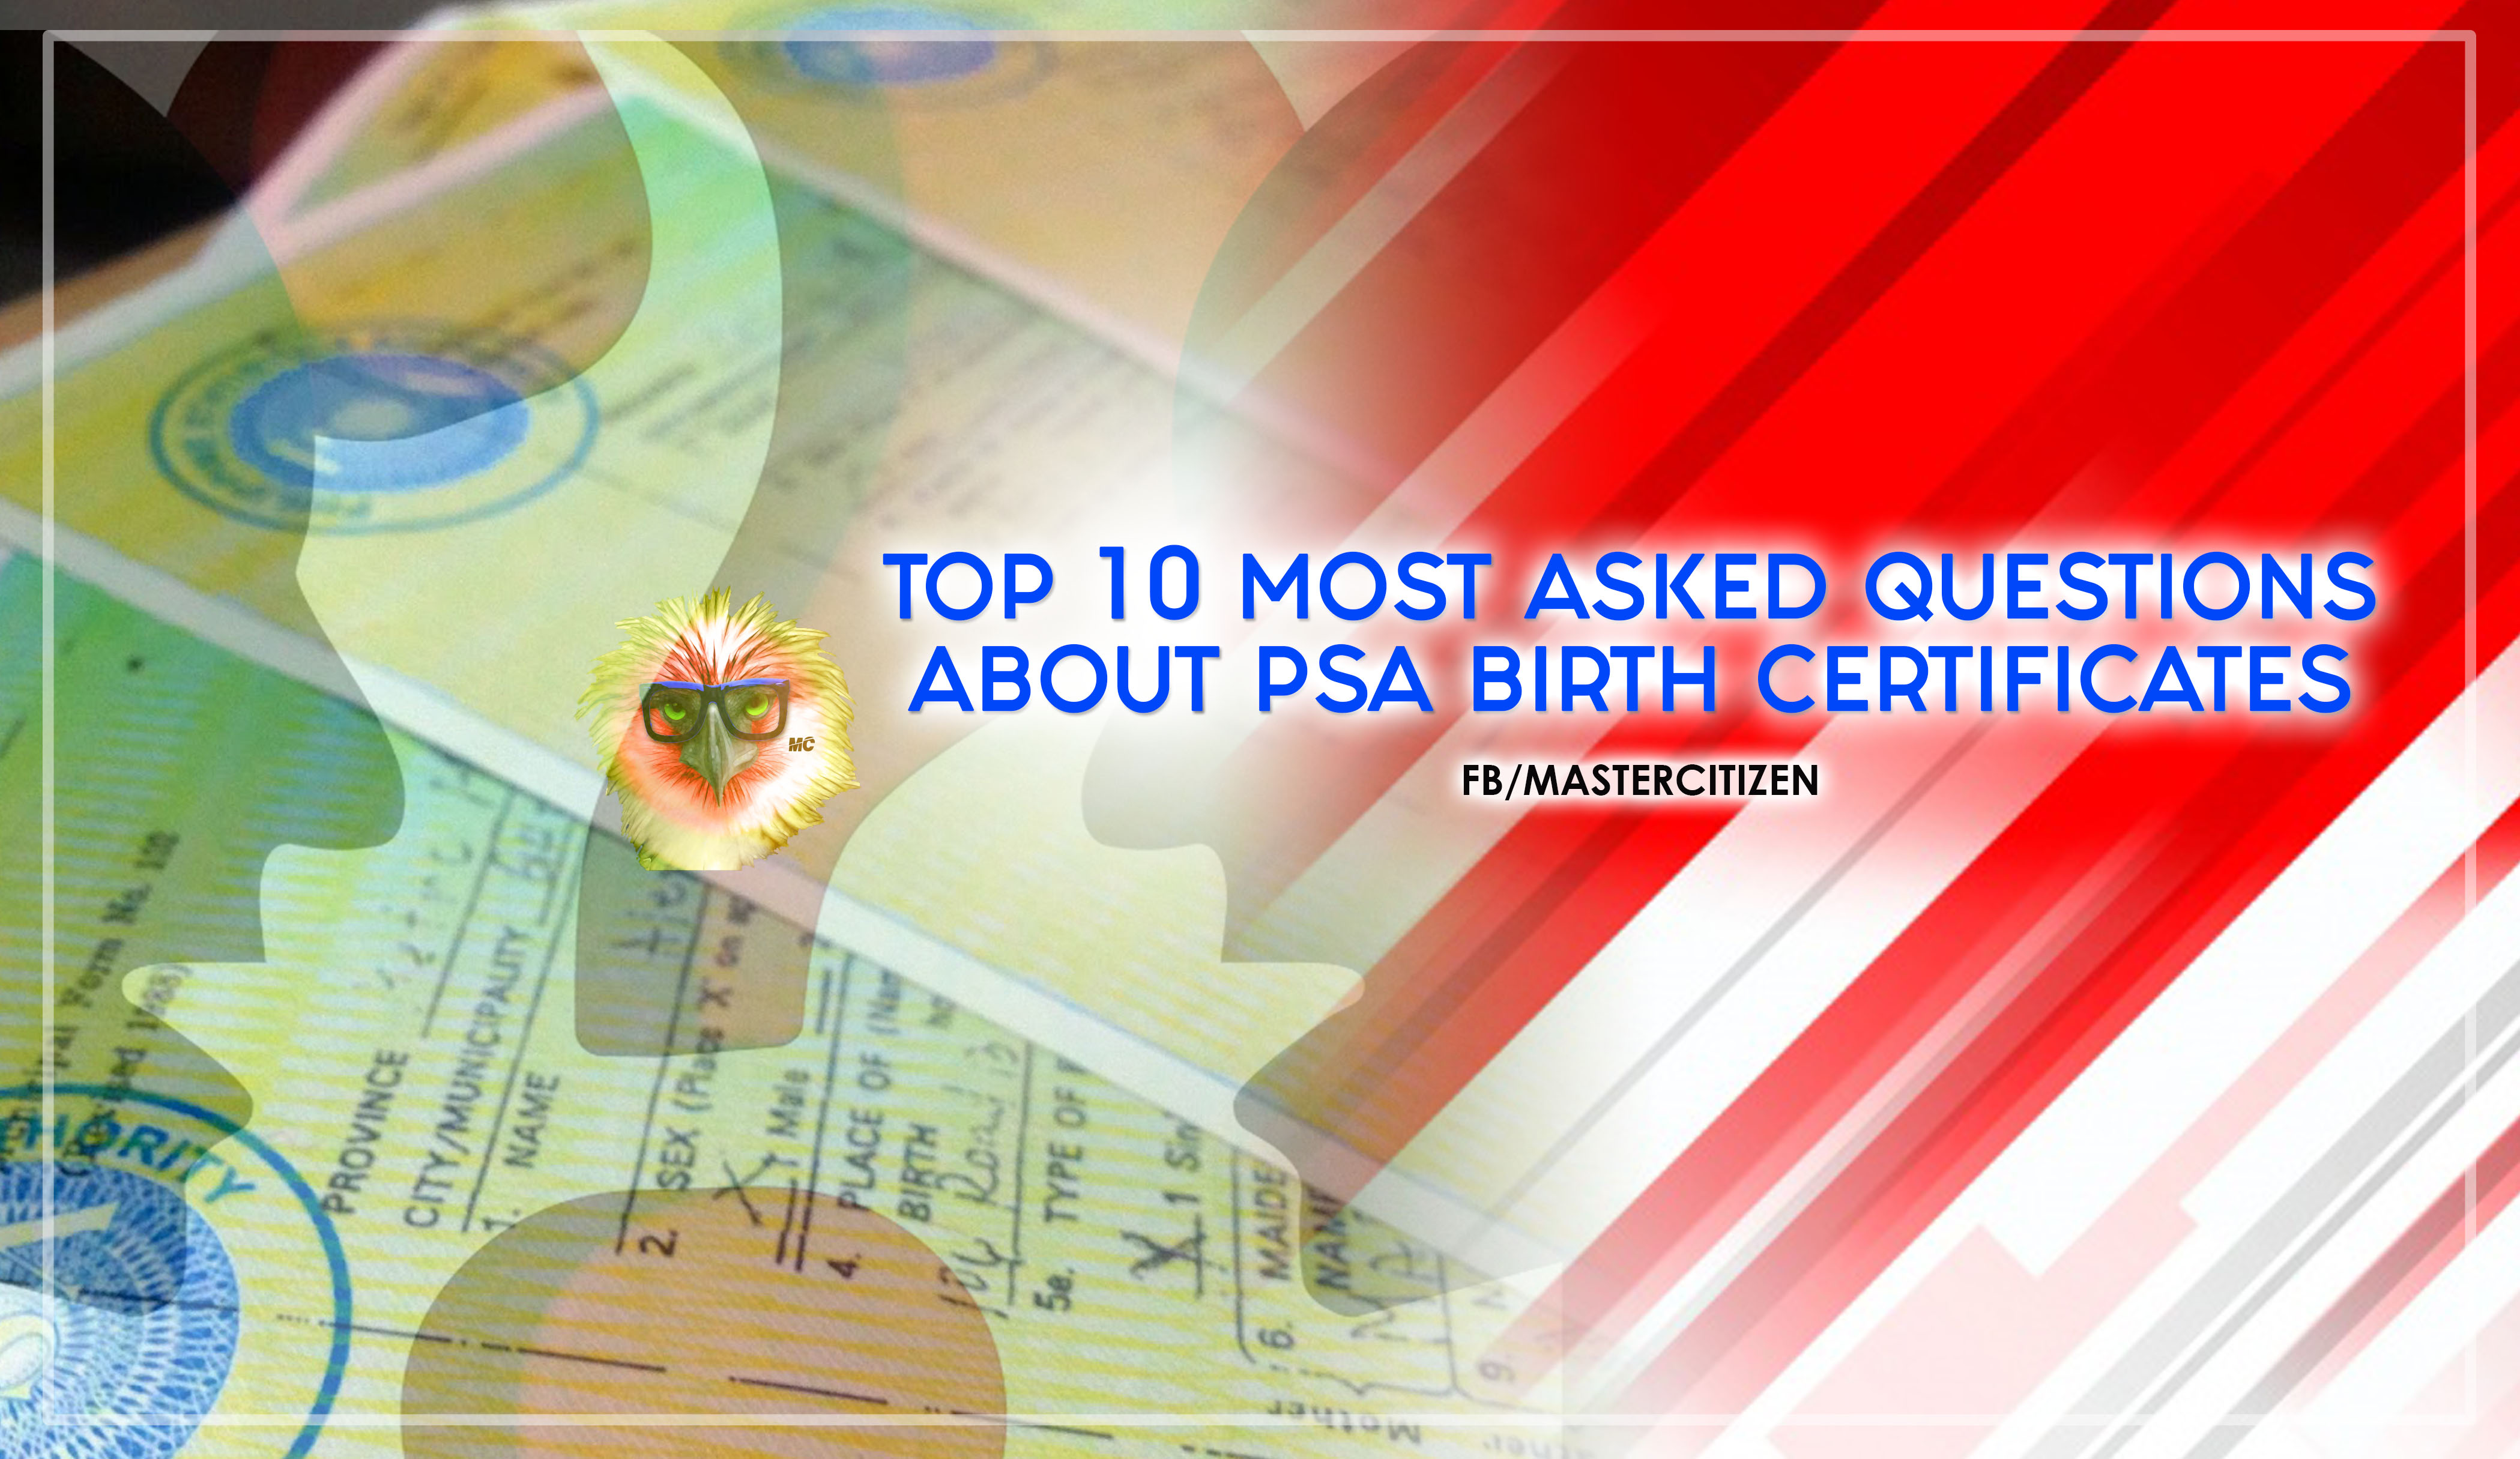 Top 10 most asked questions about psa birth certificates top 10 most asked questions about psa birth certificates mastercitizens blog aiddatafo Choice Image